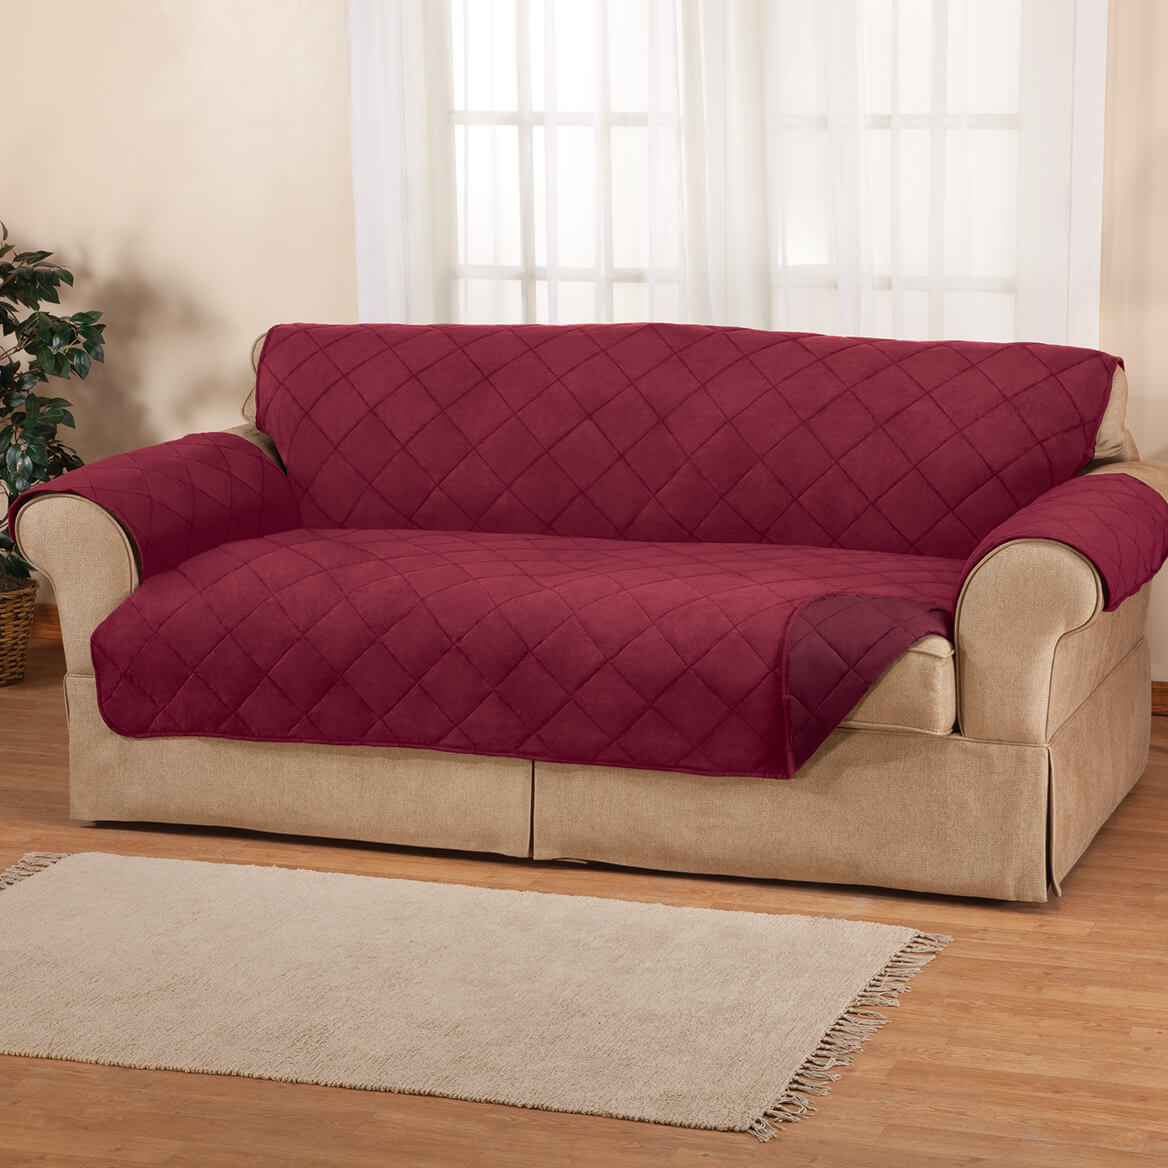 Incredible Naomi Suede Microfiber Xl Sofa Cover By Oakridge Ocoug Best Dining Table And Chair Ideas Images Ocougorg